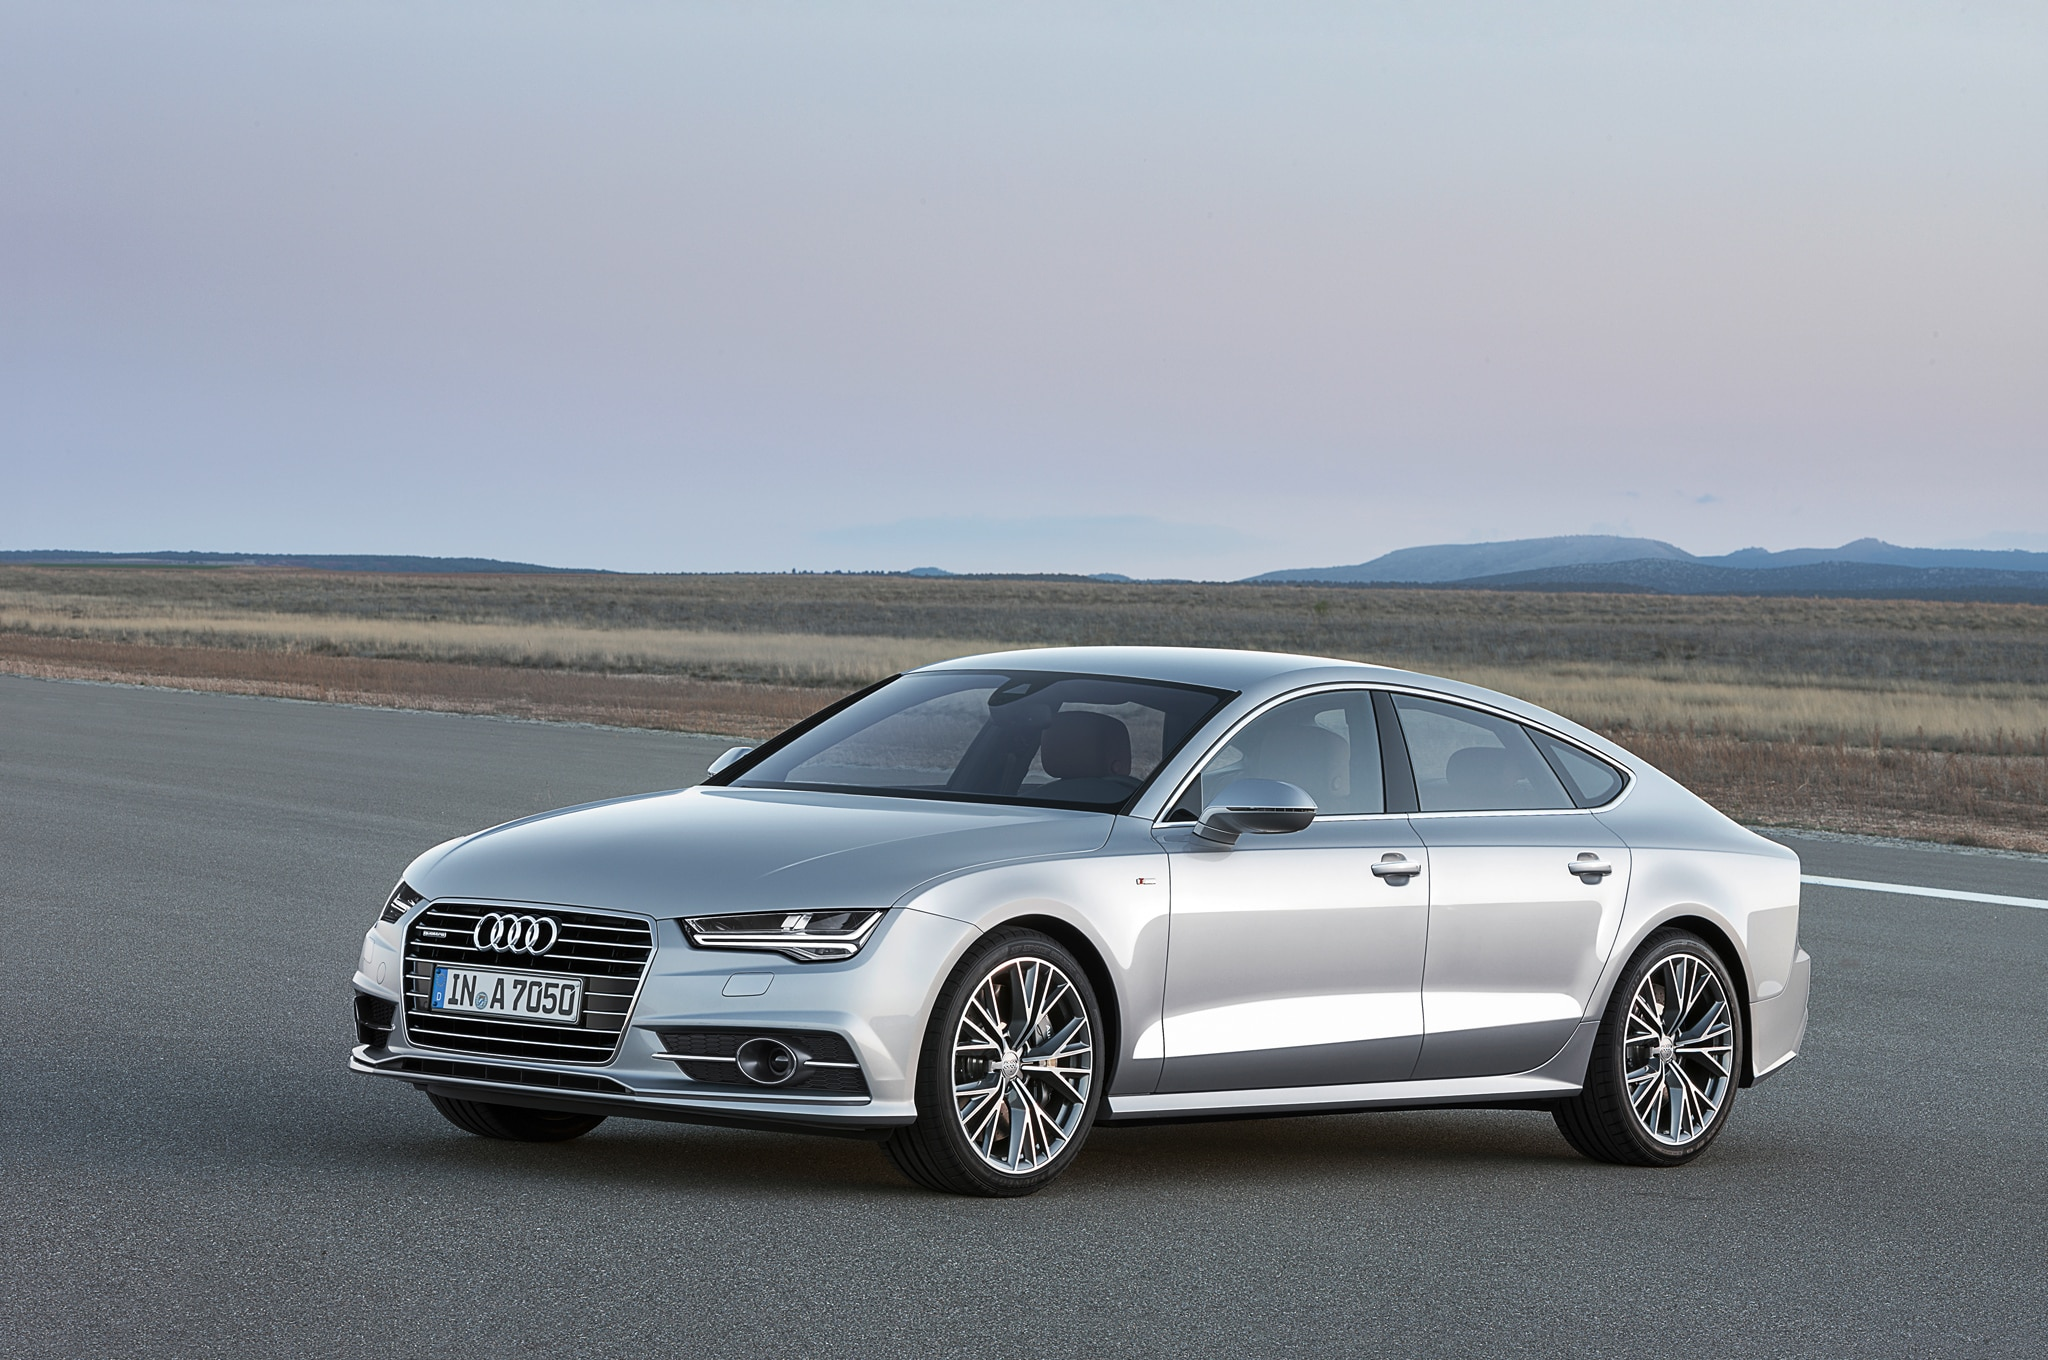 2015 Audi A7 Front Three Quarter